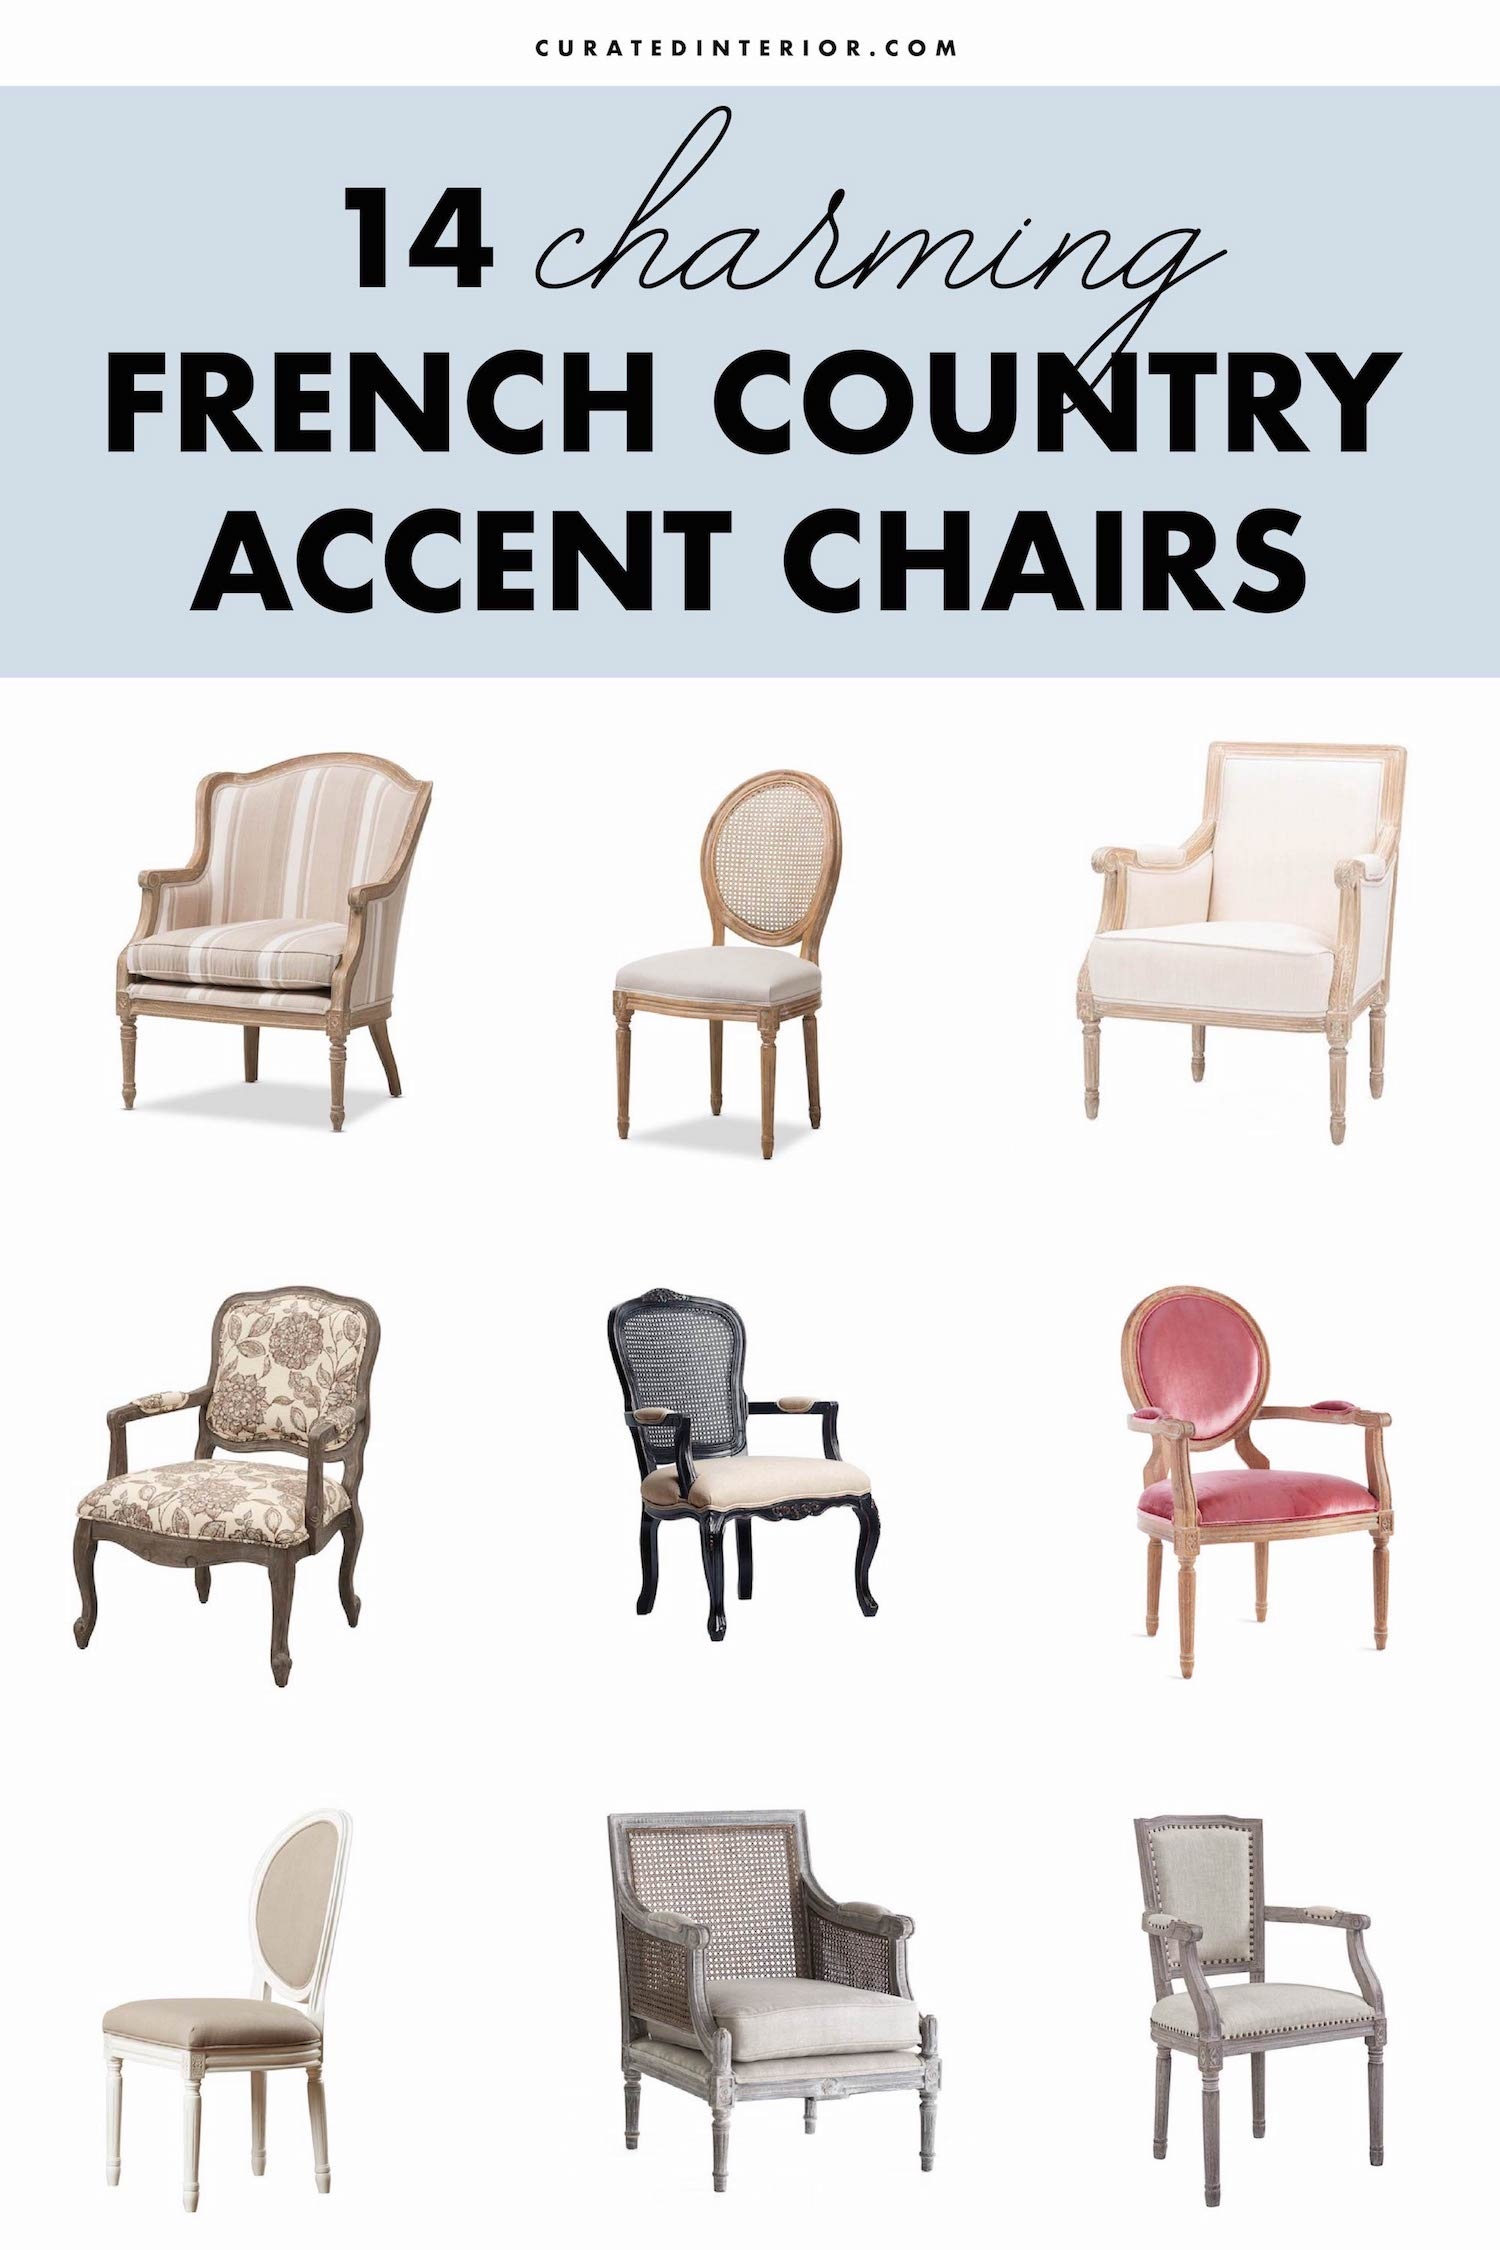 Awe Inspiring 14 Charming Affordable French Country Accent Chairs Bralicious Painted Fabric Chair Ideas Braliciousco